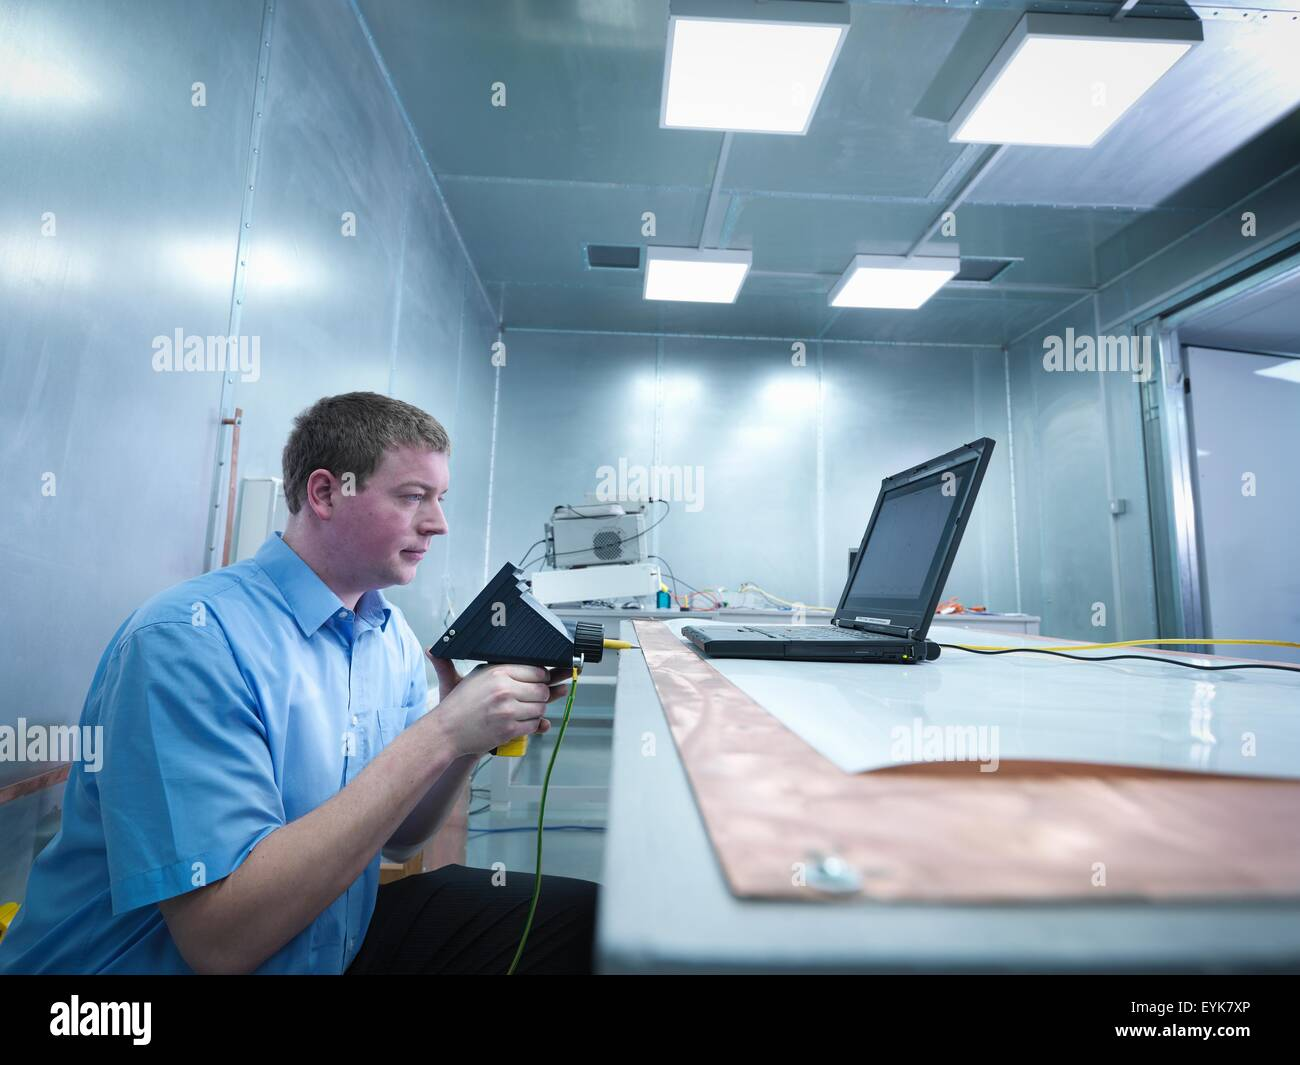 Engineer carrying out electro static discharge (ESD) testing using air discharge probe on copper table in screened - Stock Image